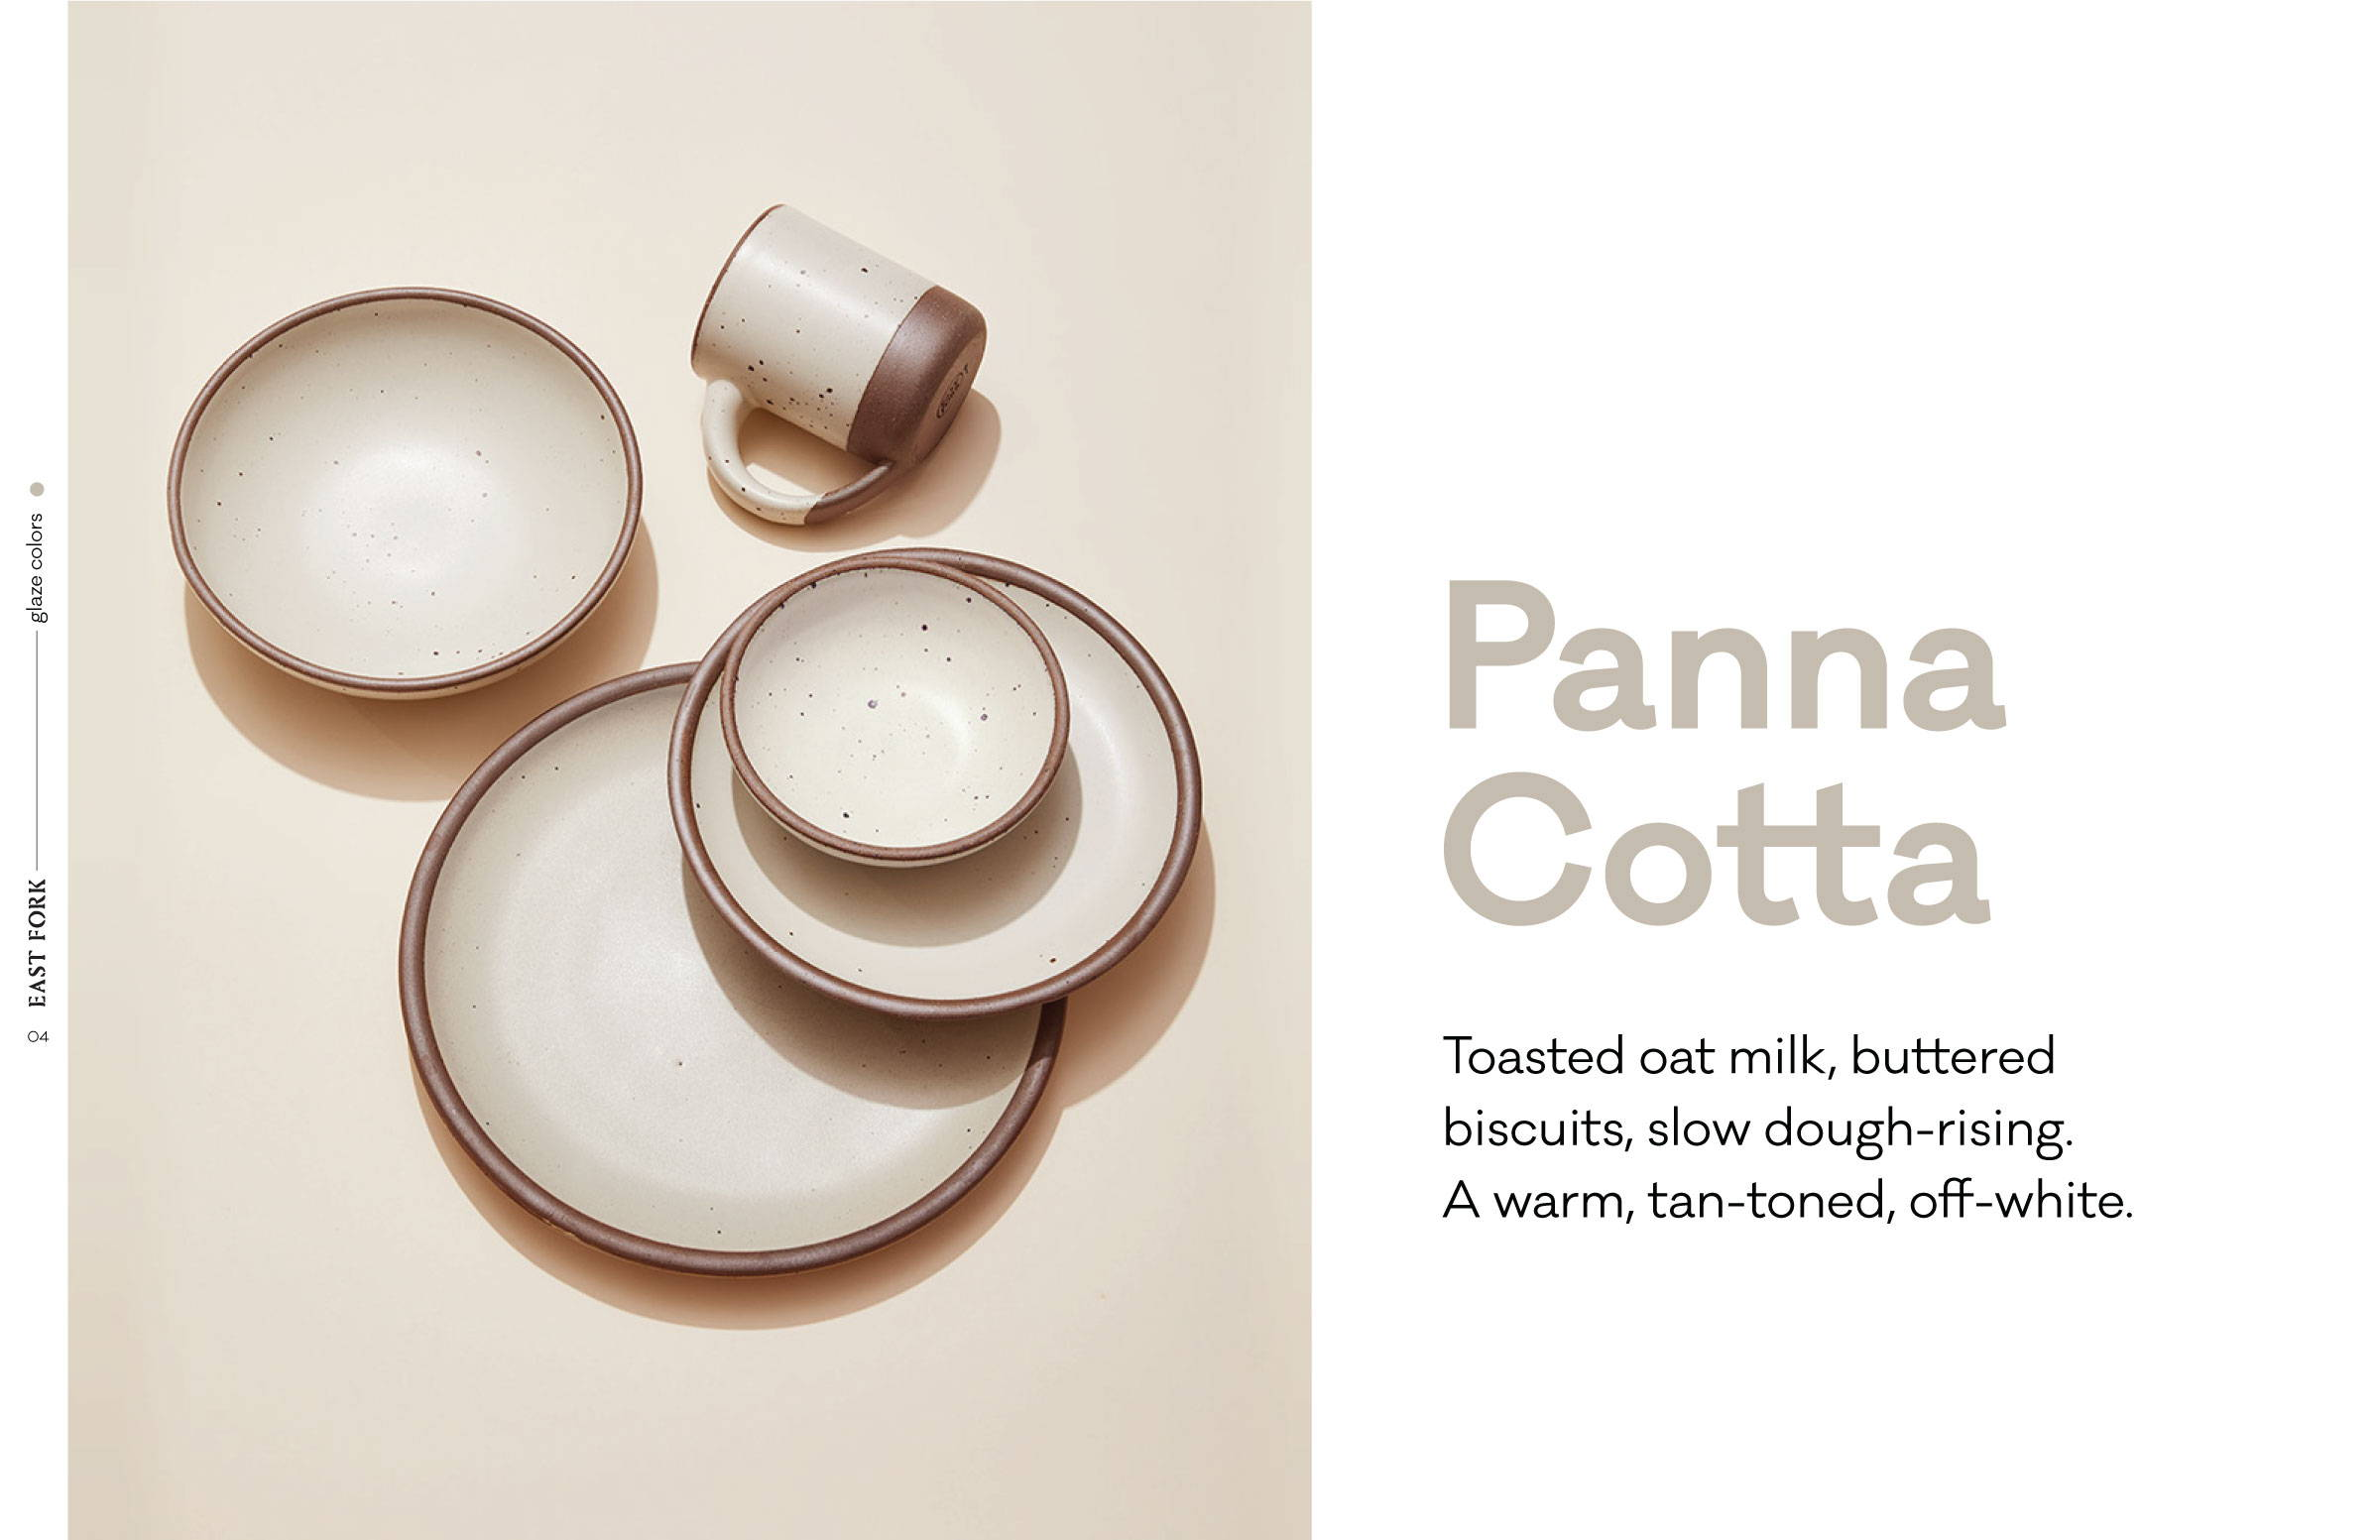 Panna Cotta: a warm, tan-toned, off-white